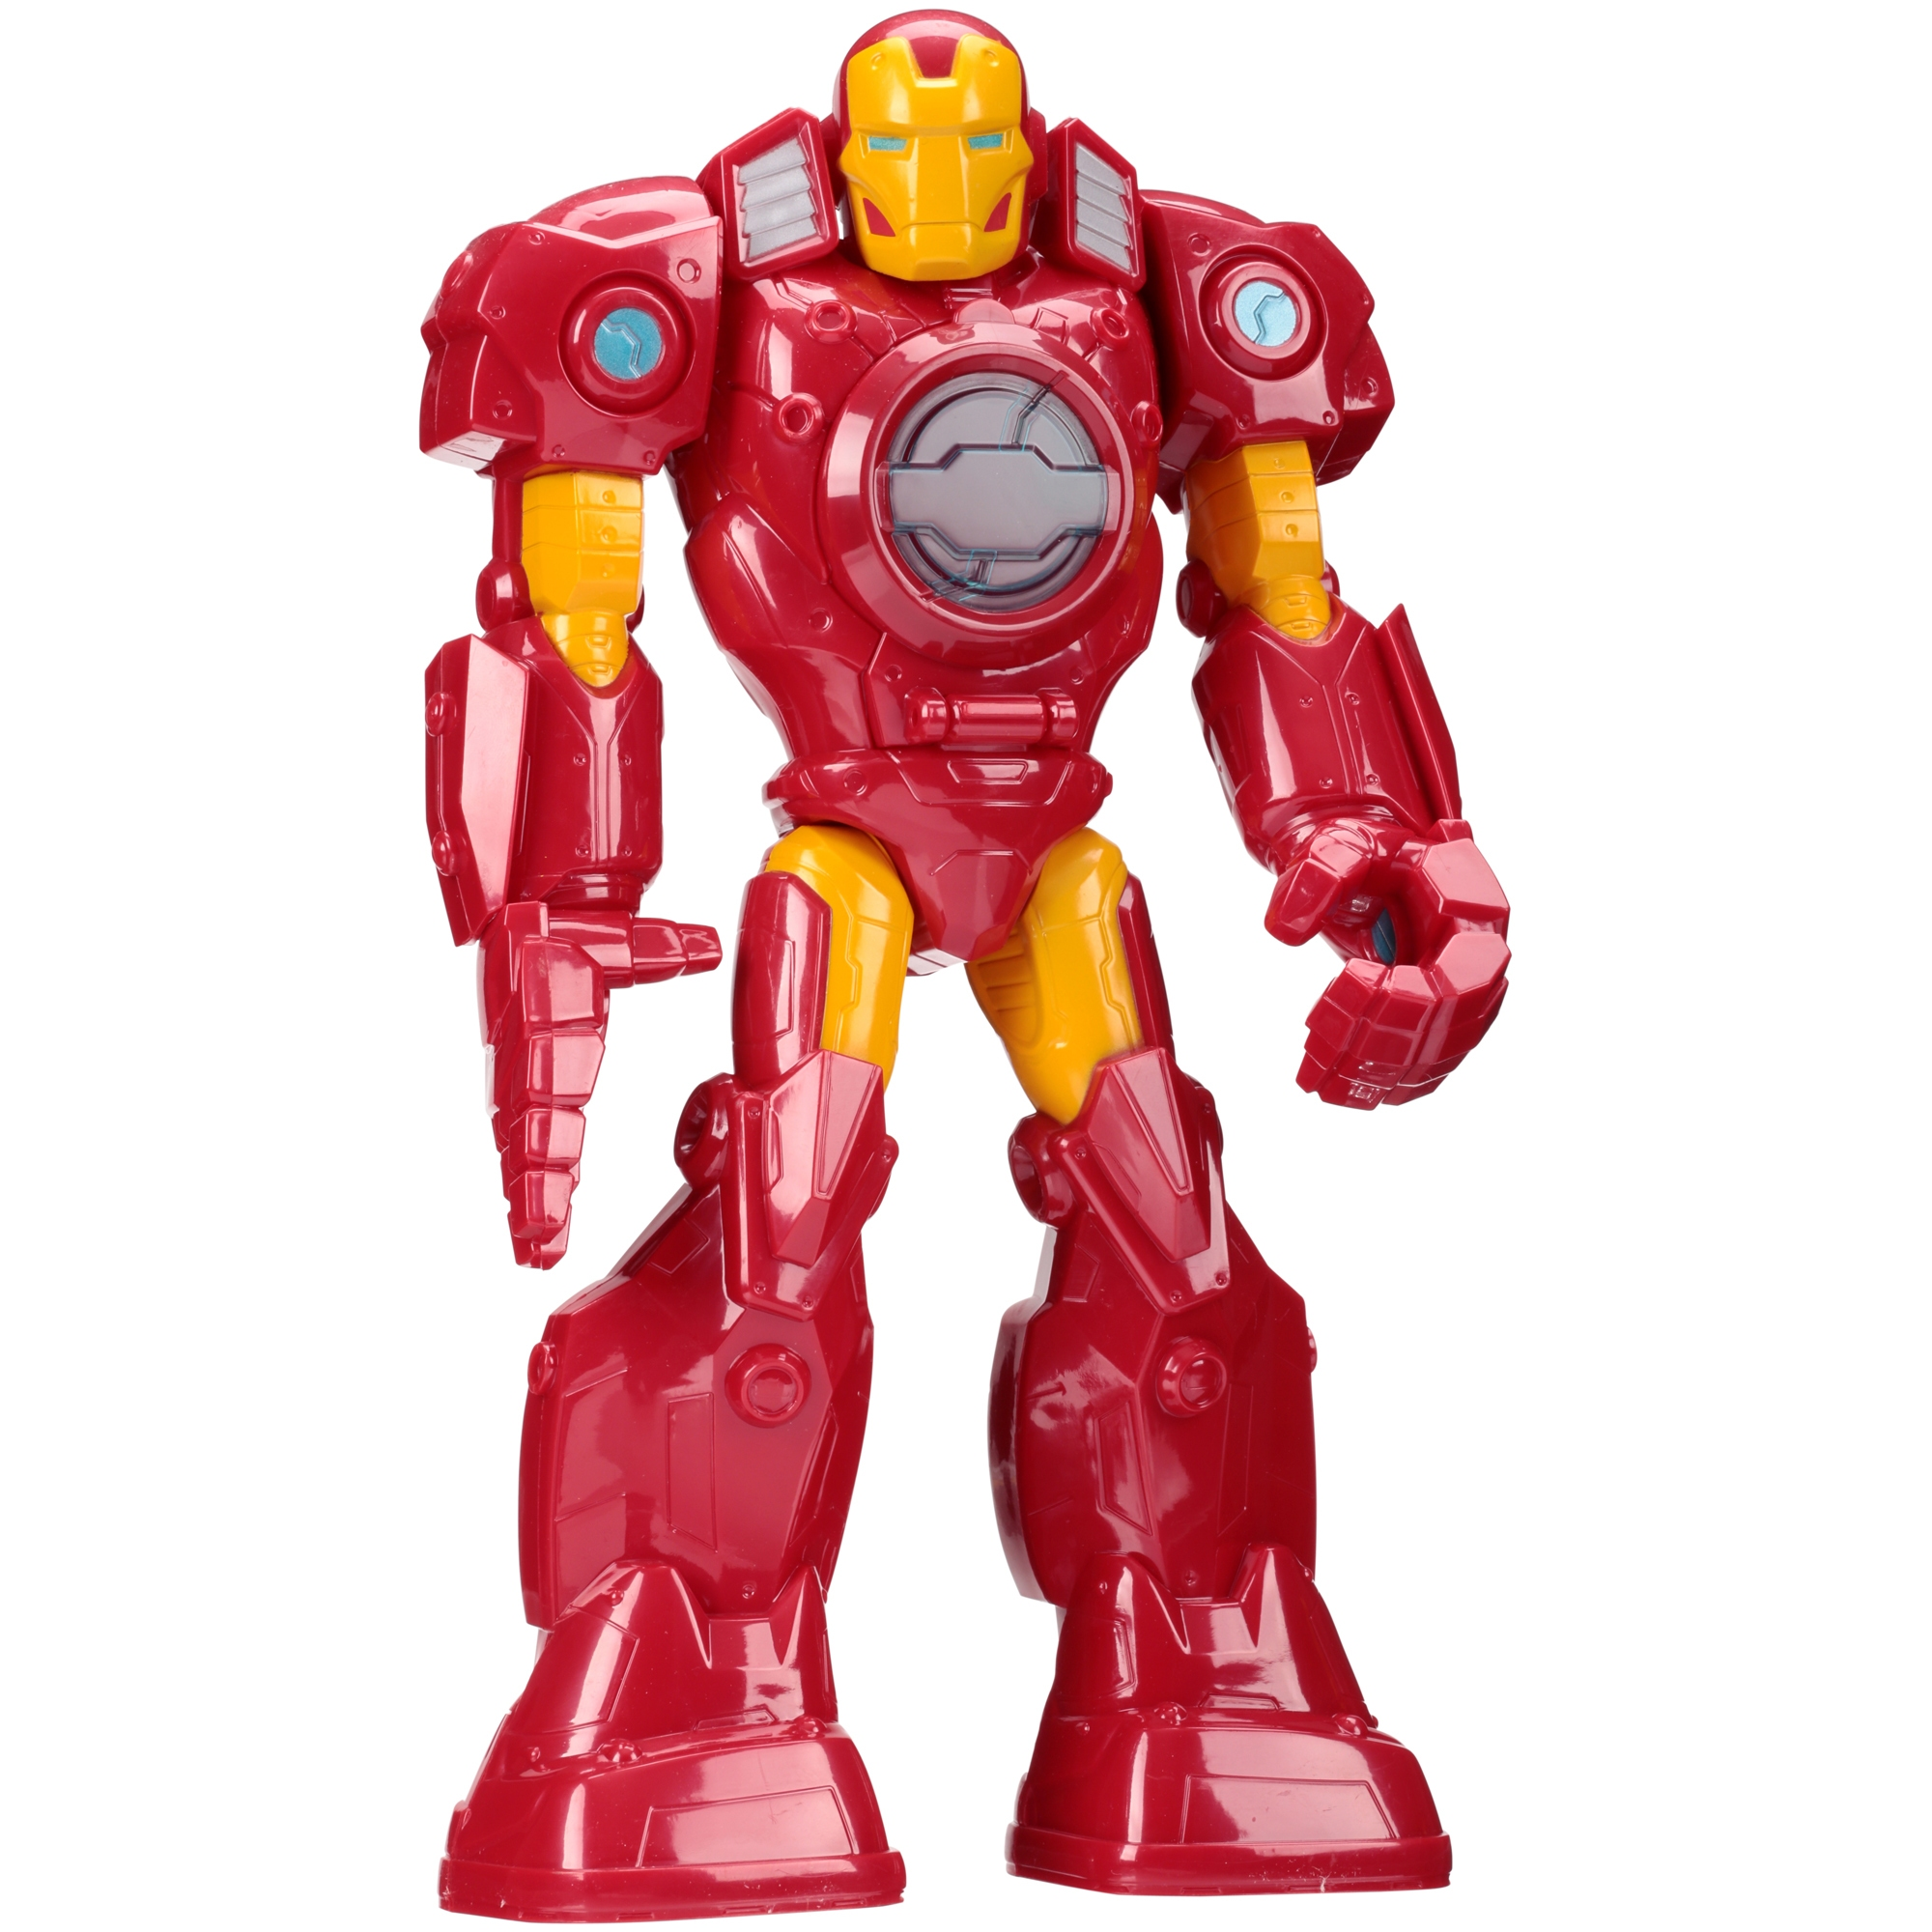 Playskool Heroes Marvel Super Hero Adventures Iron Man Mech Armor Action Figure by Hasbro